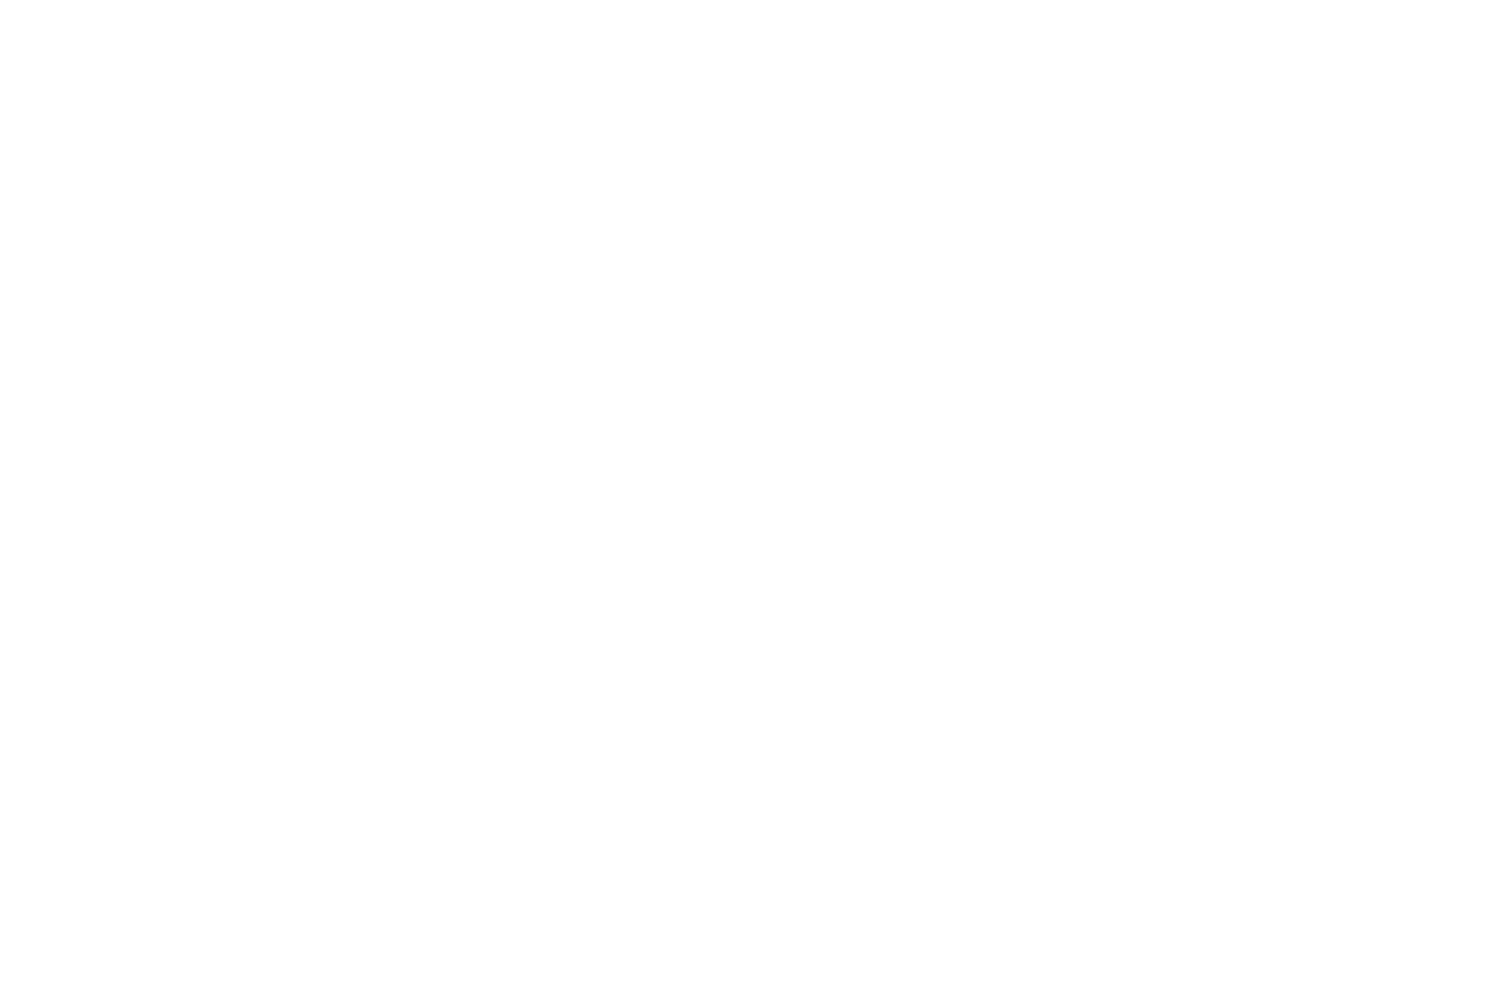 Kyle Archibald Photography